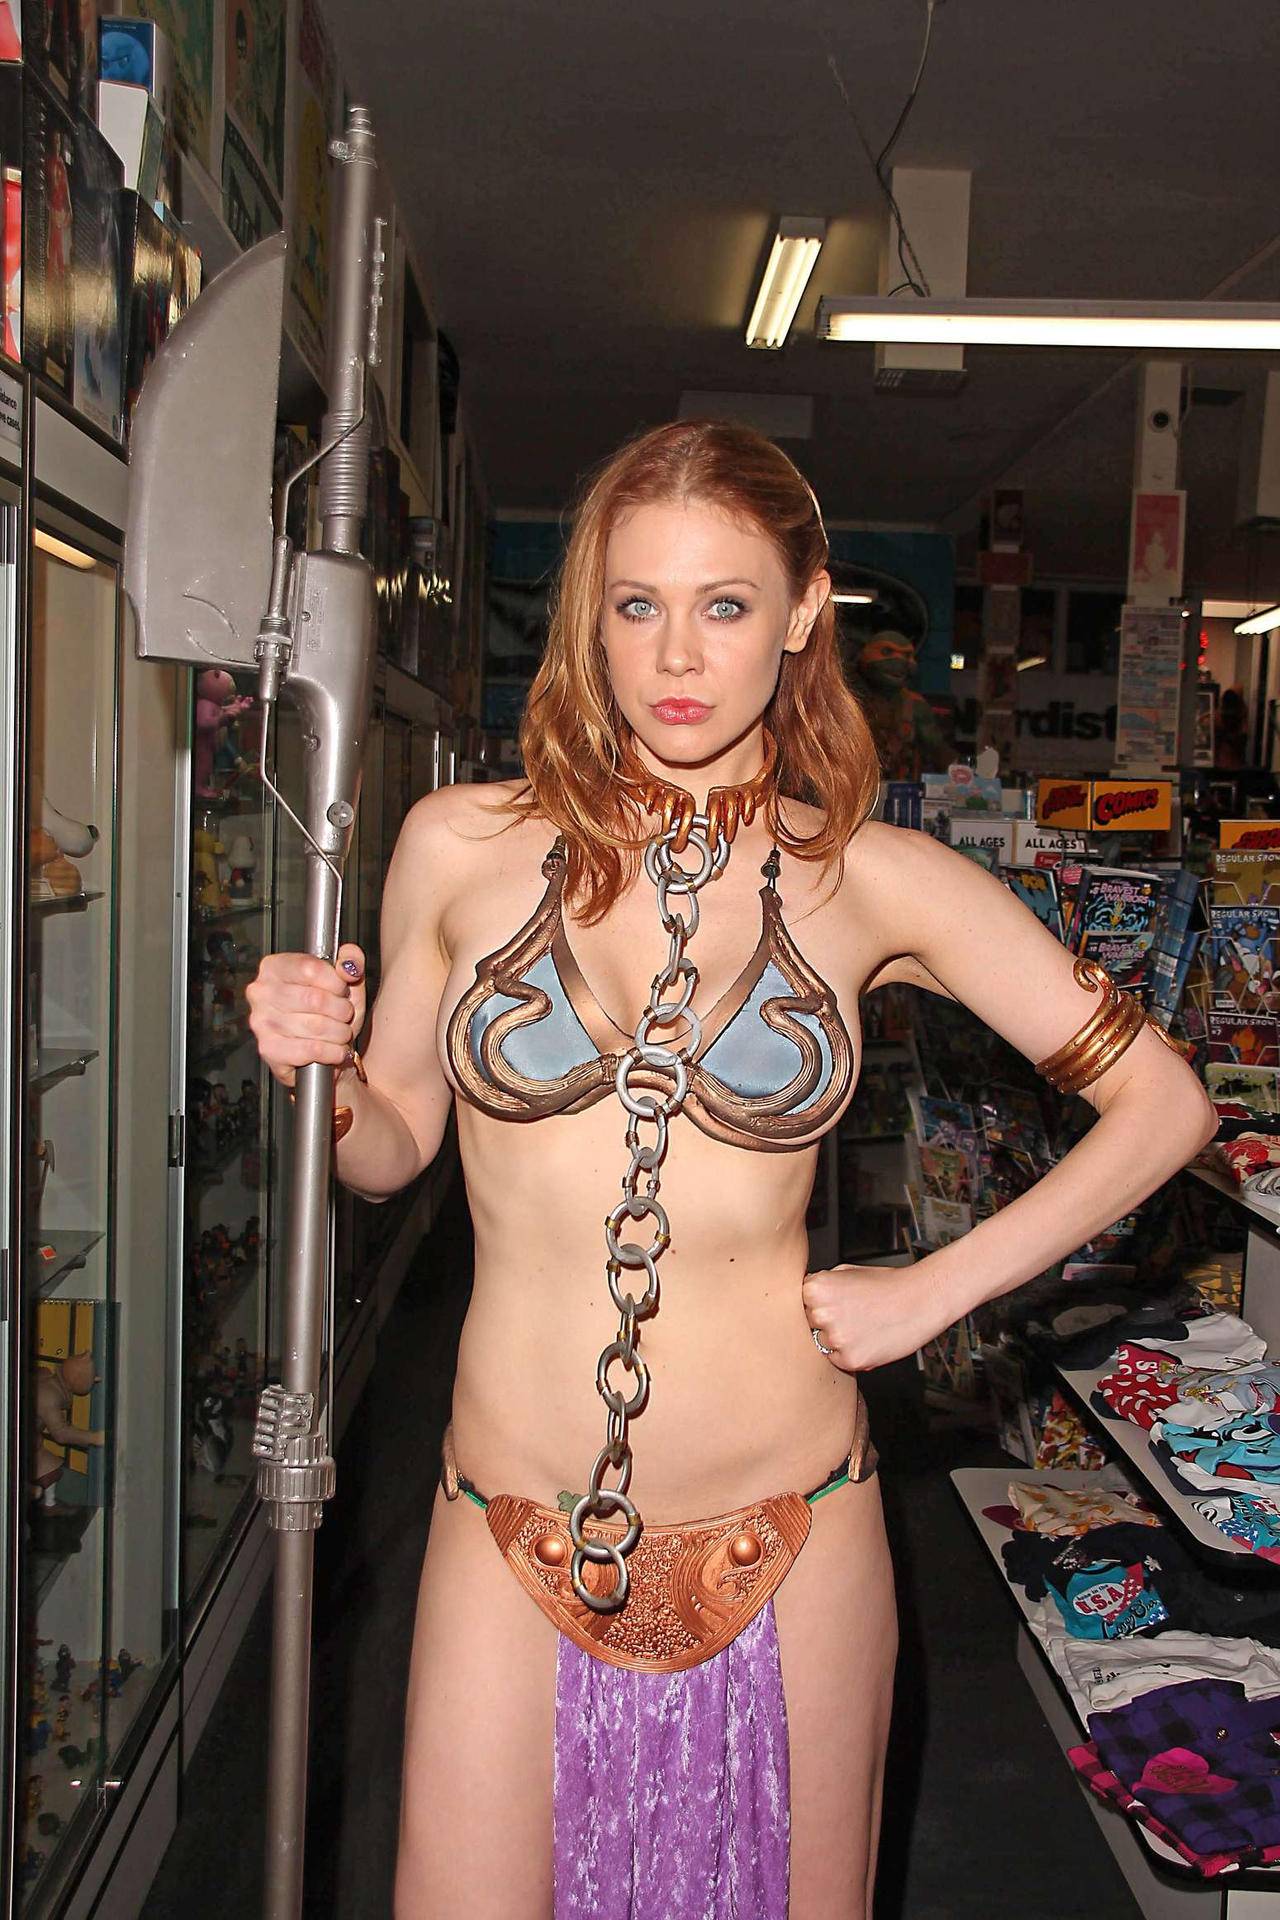 Amateur slave leia star wars cosplay blowjob amp cim - 5 2